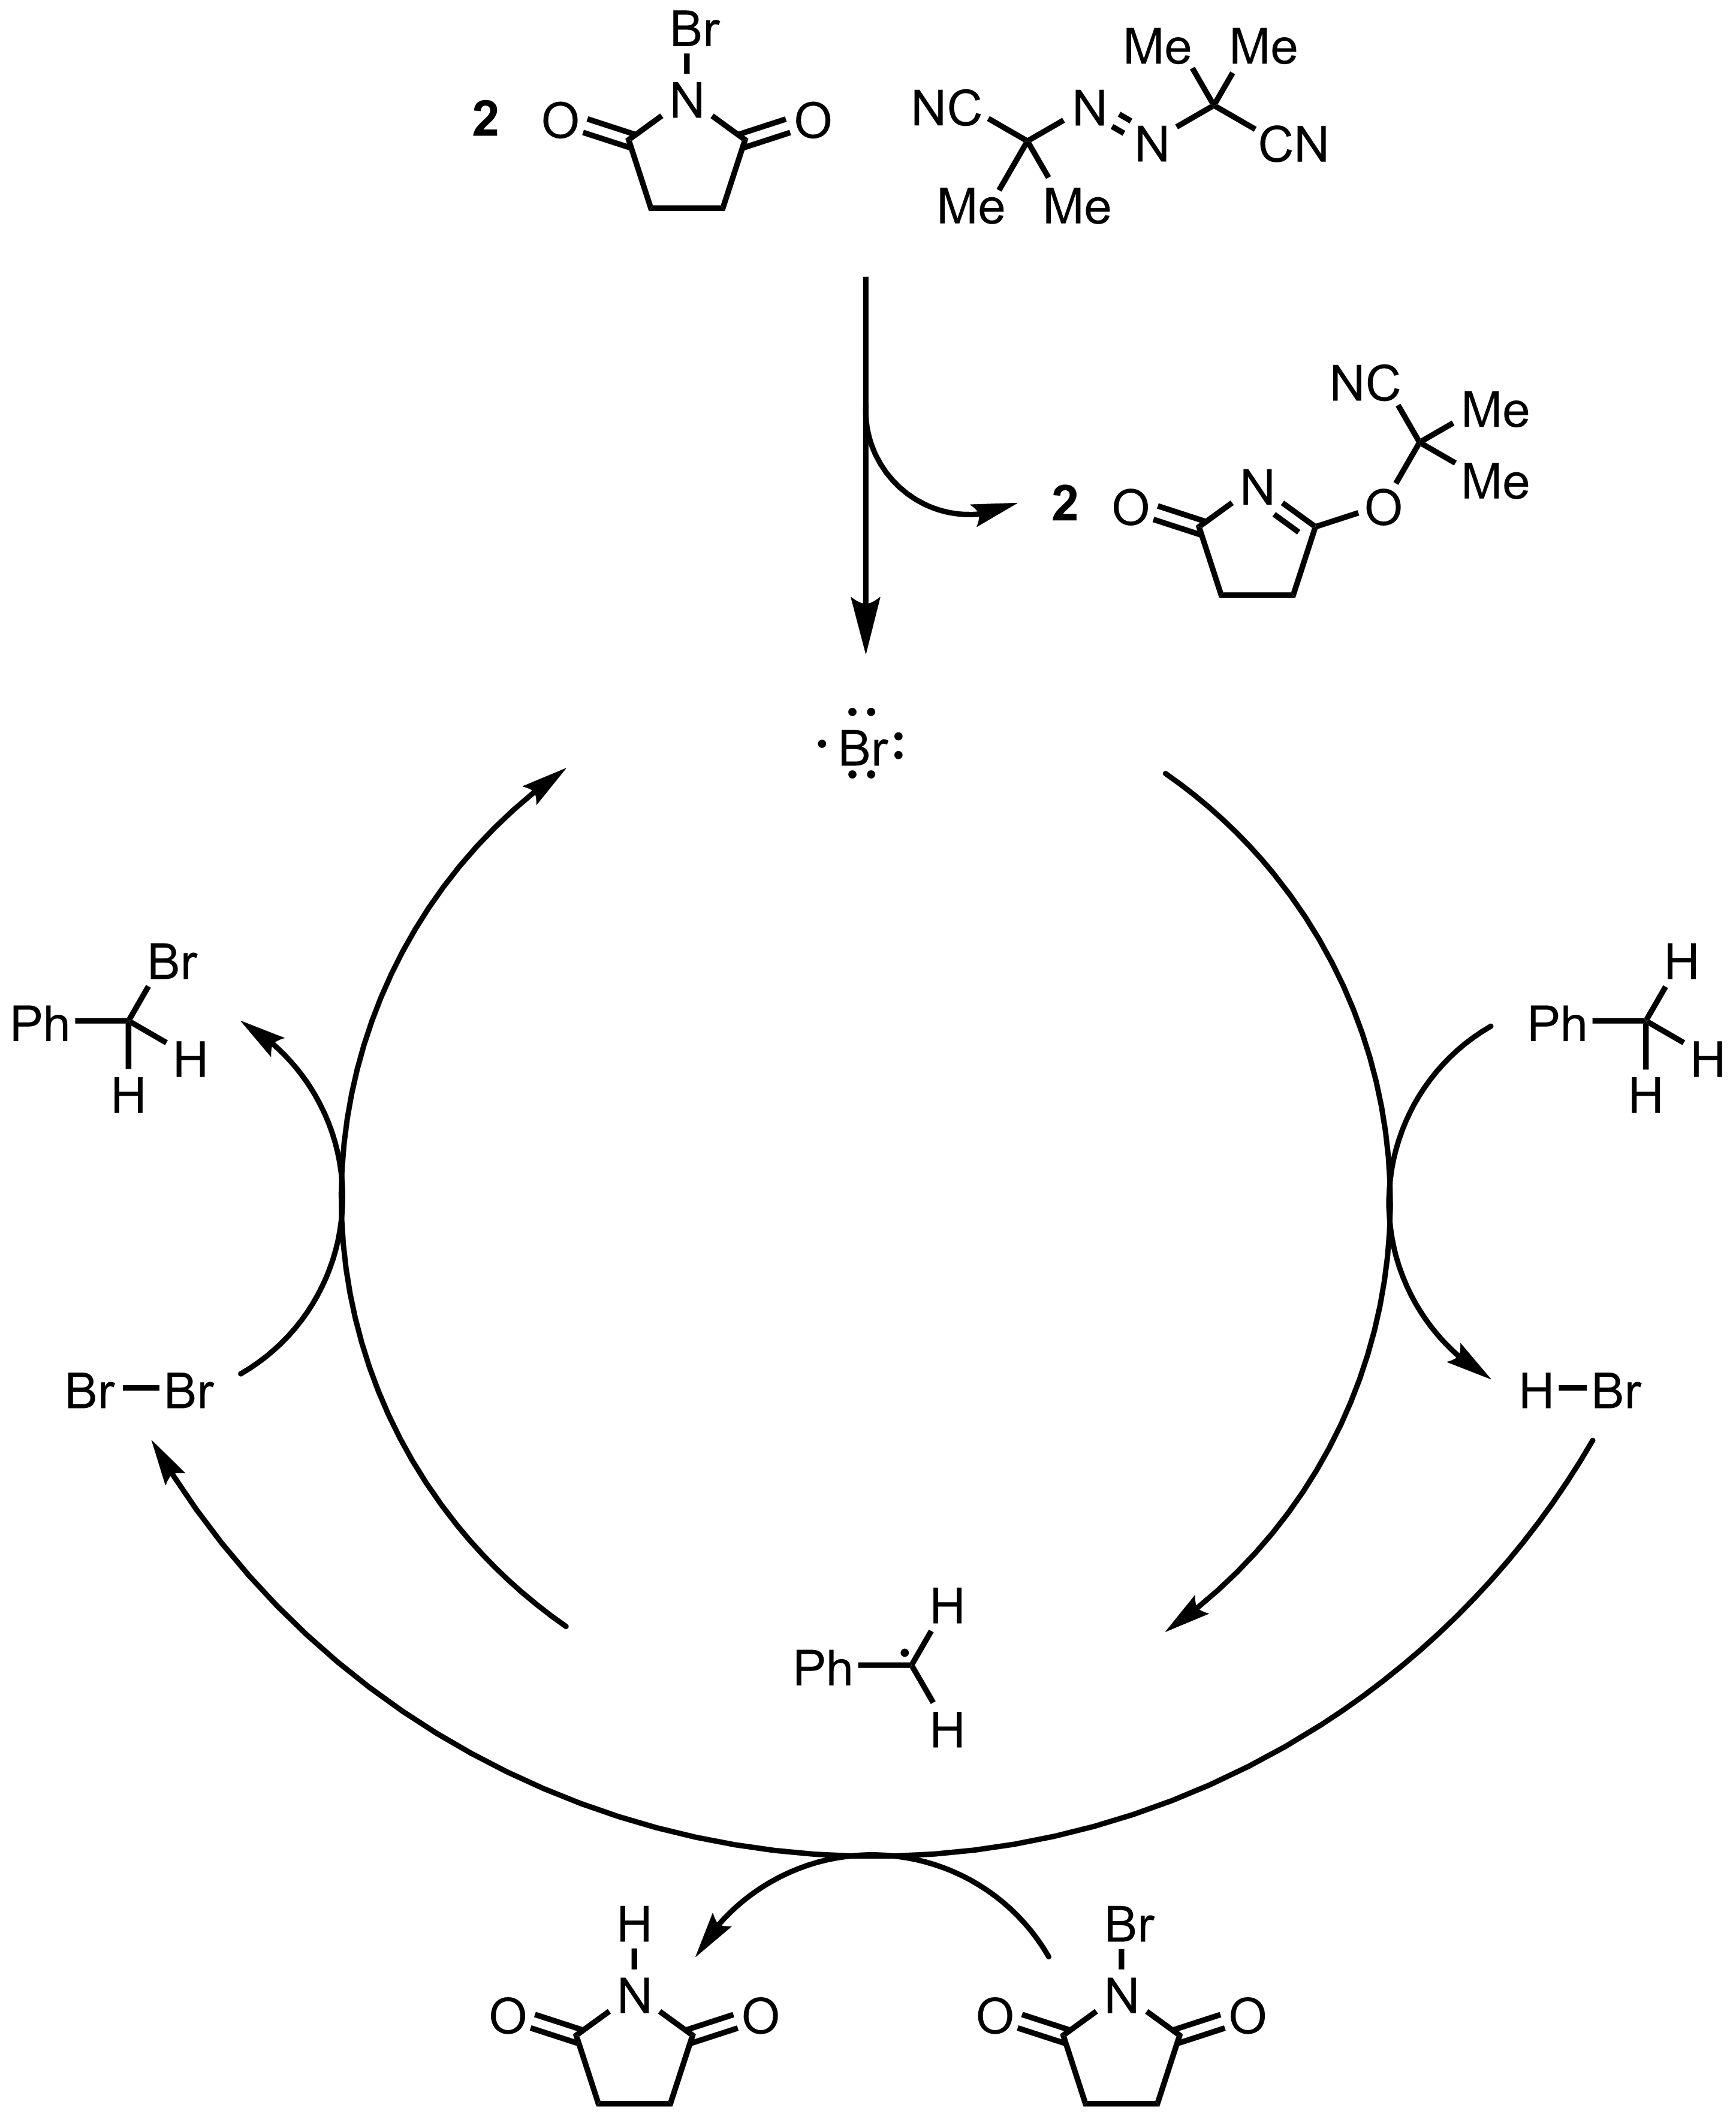 Mechanism of the Wohl-Ziegler Reaction